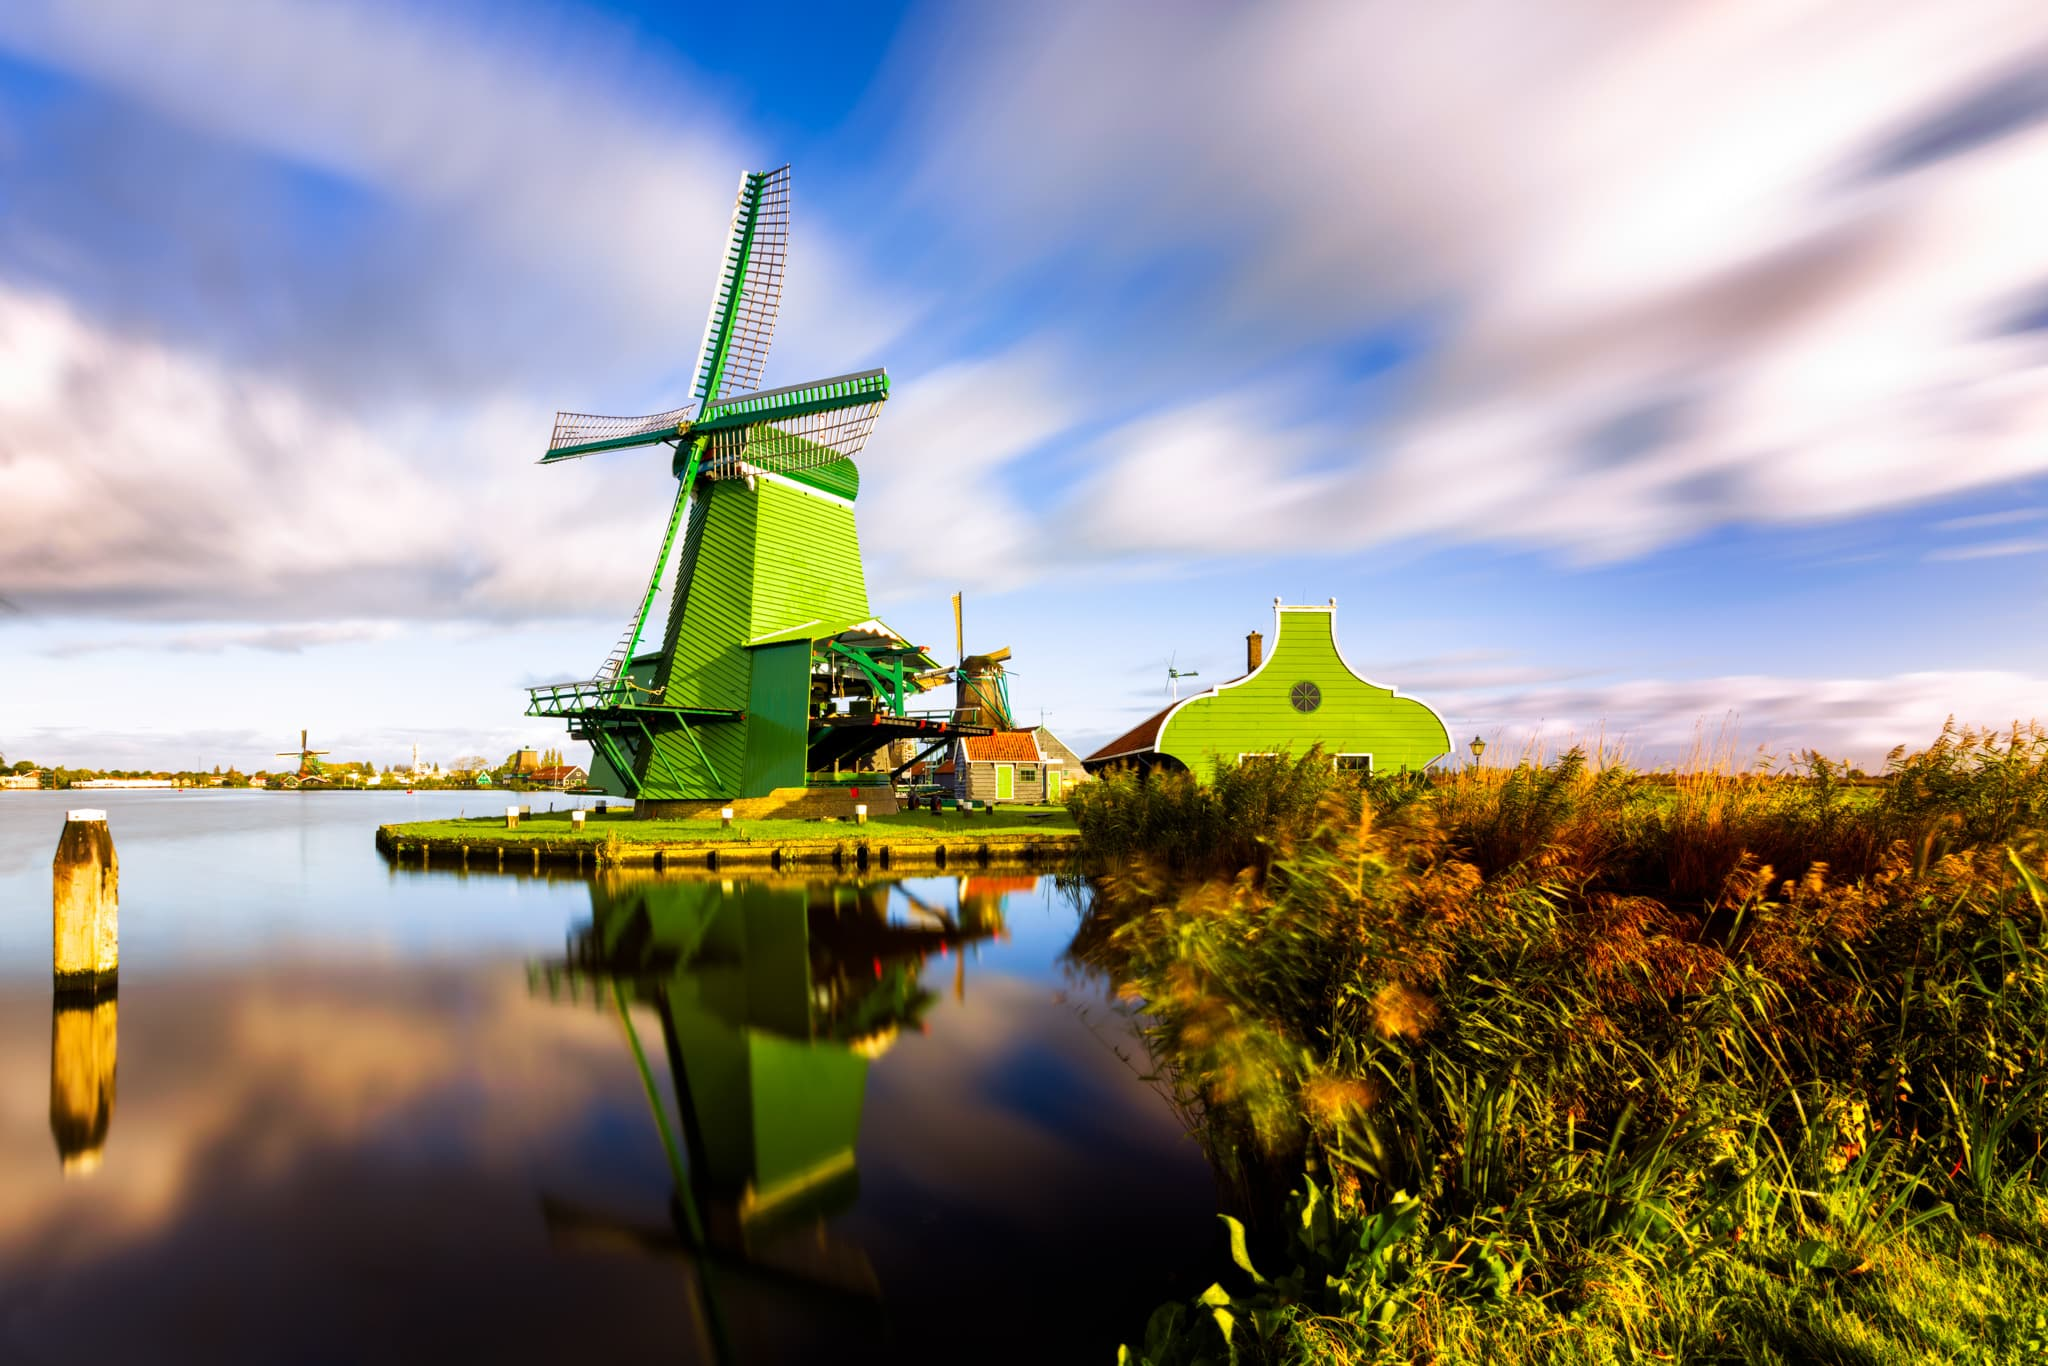 Windmills like De Gekroonde Poelenburg in Zaanse Schans in the Netherlands.